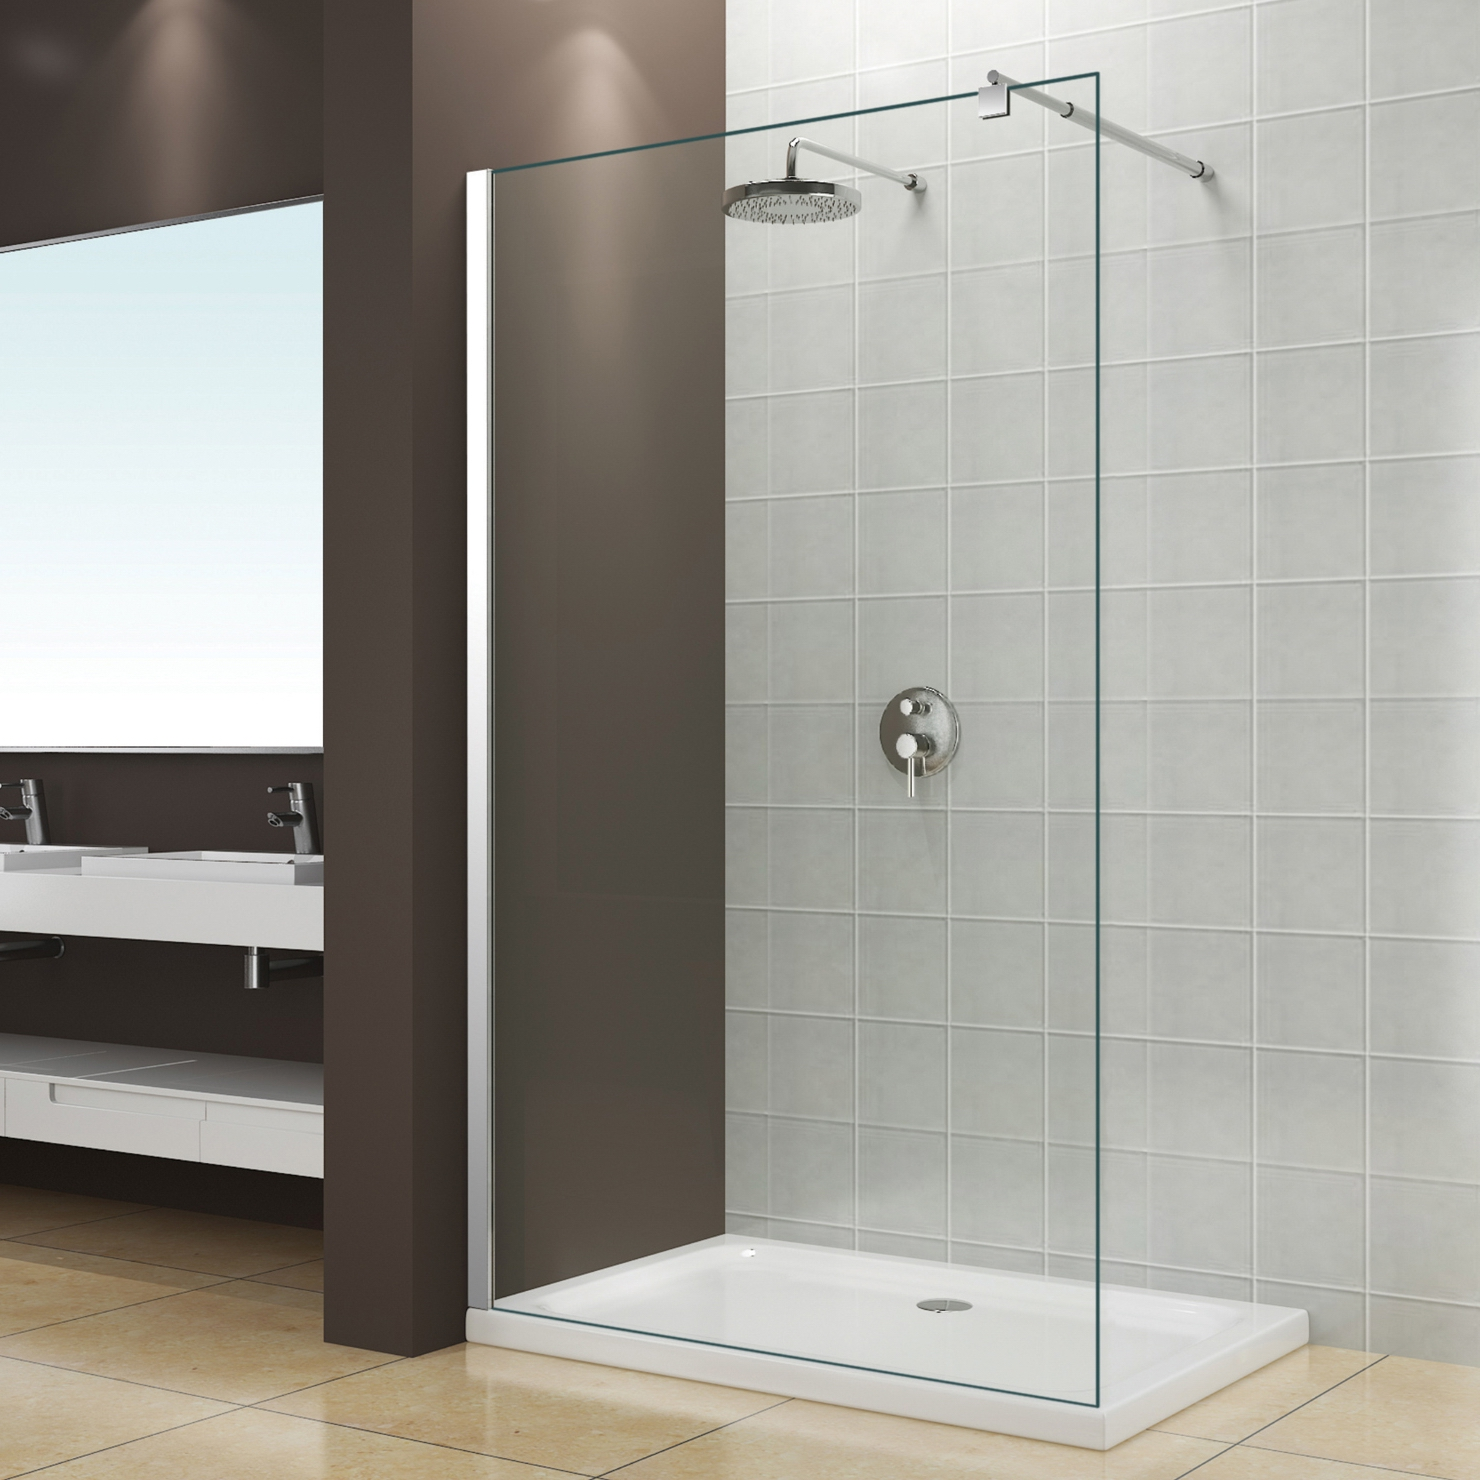 Single Piece Walk-in 6MM 8MM 10MM Tempered Glass Shower Door Shower Room